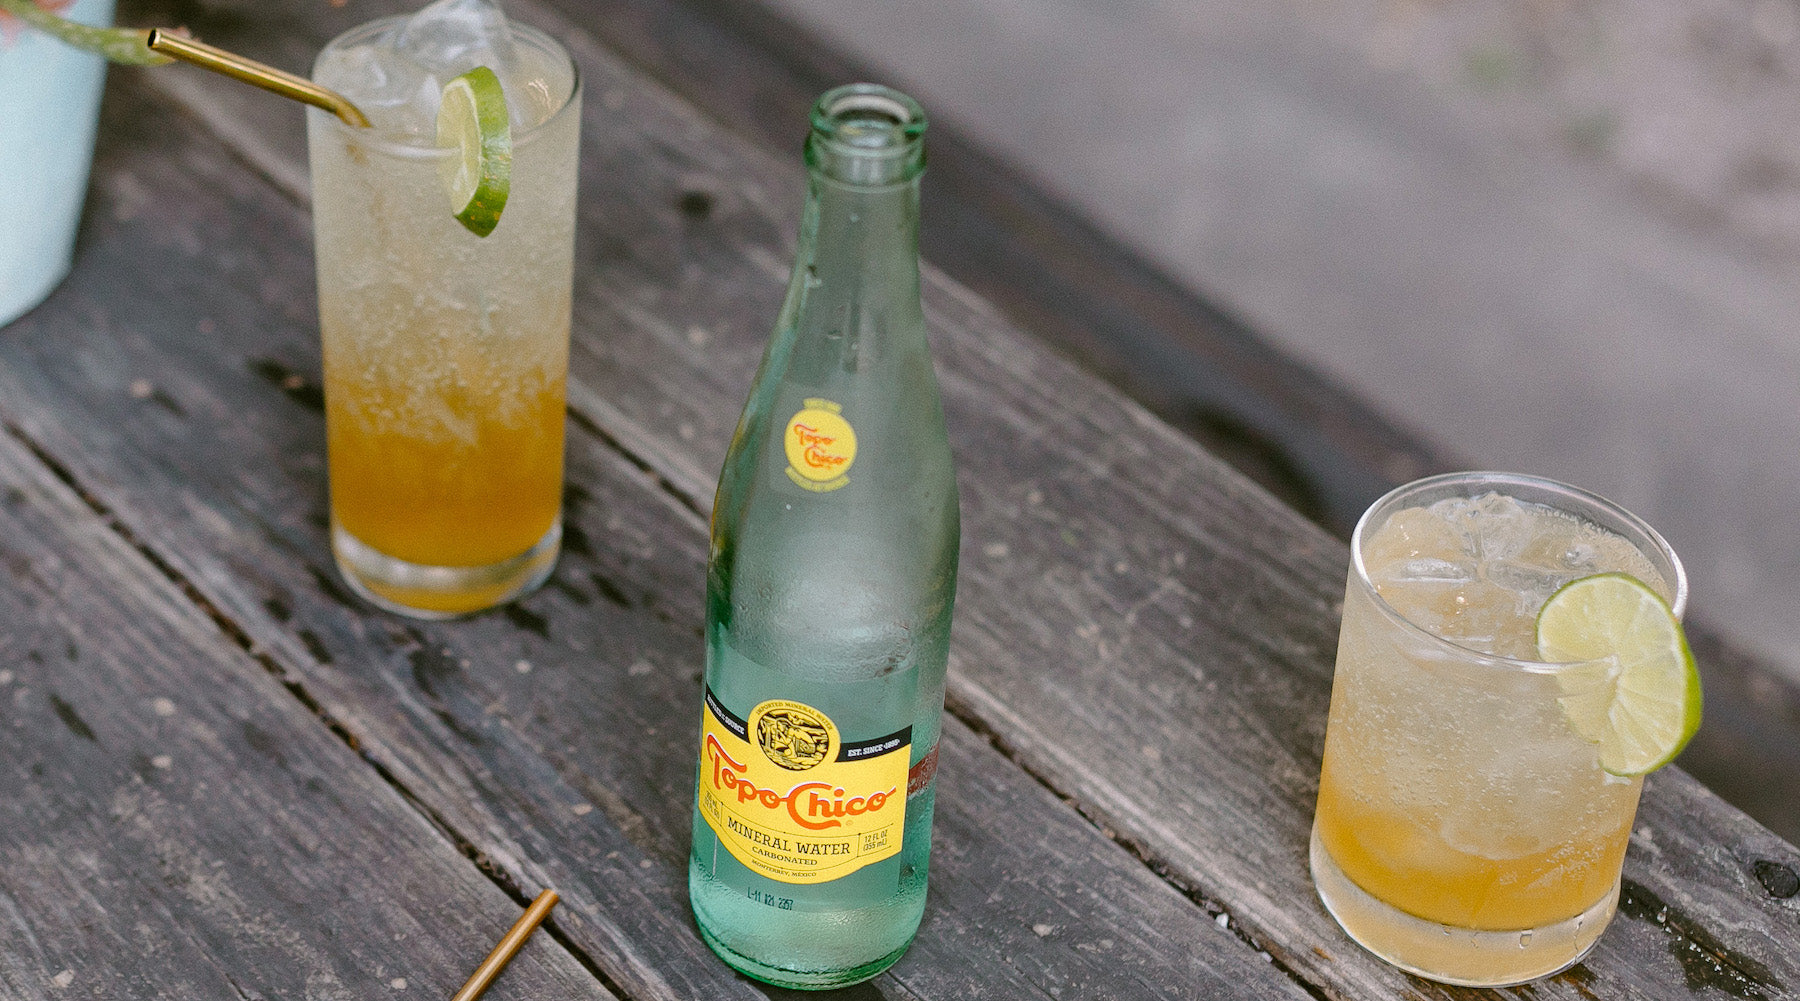 RATIO RECIPES: GOLDEN CITRUS SPRITZER